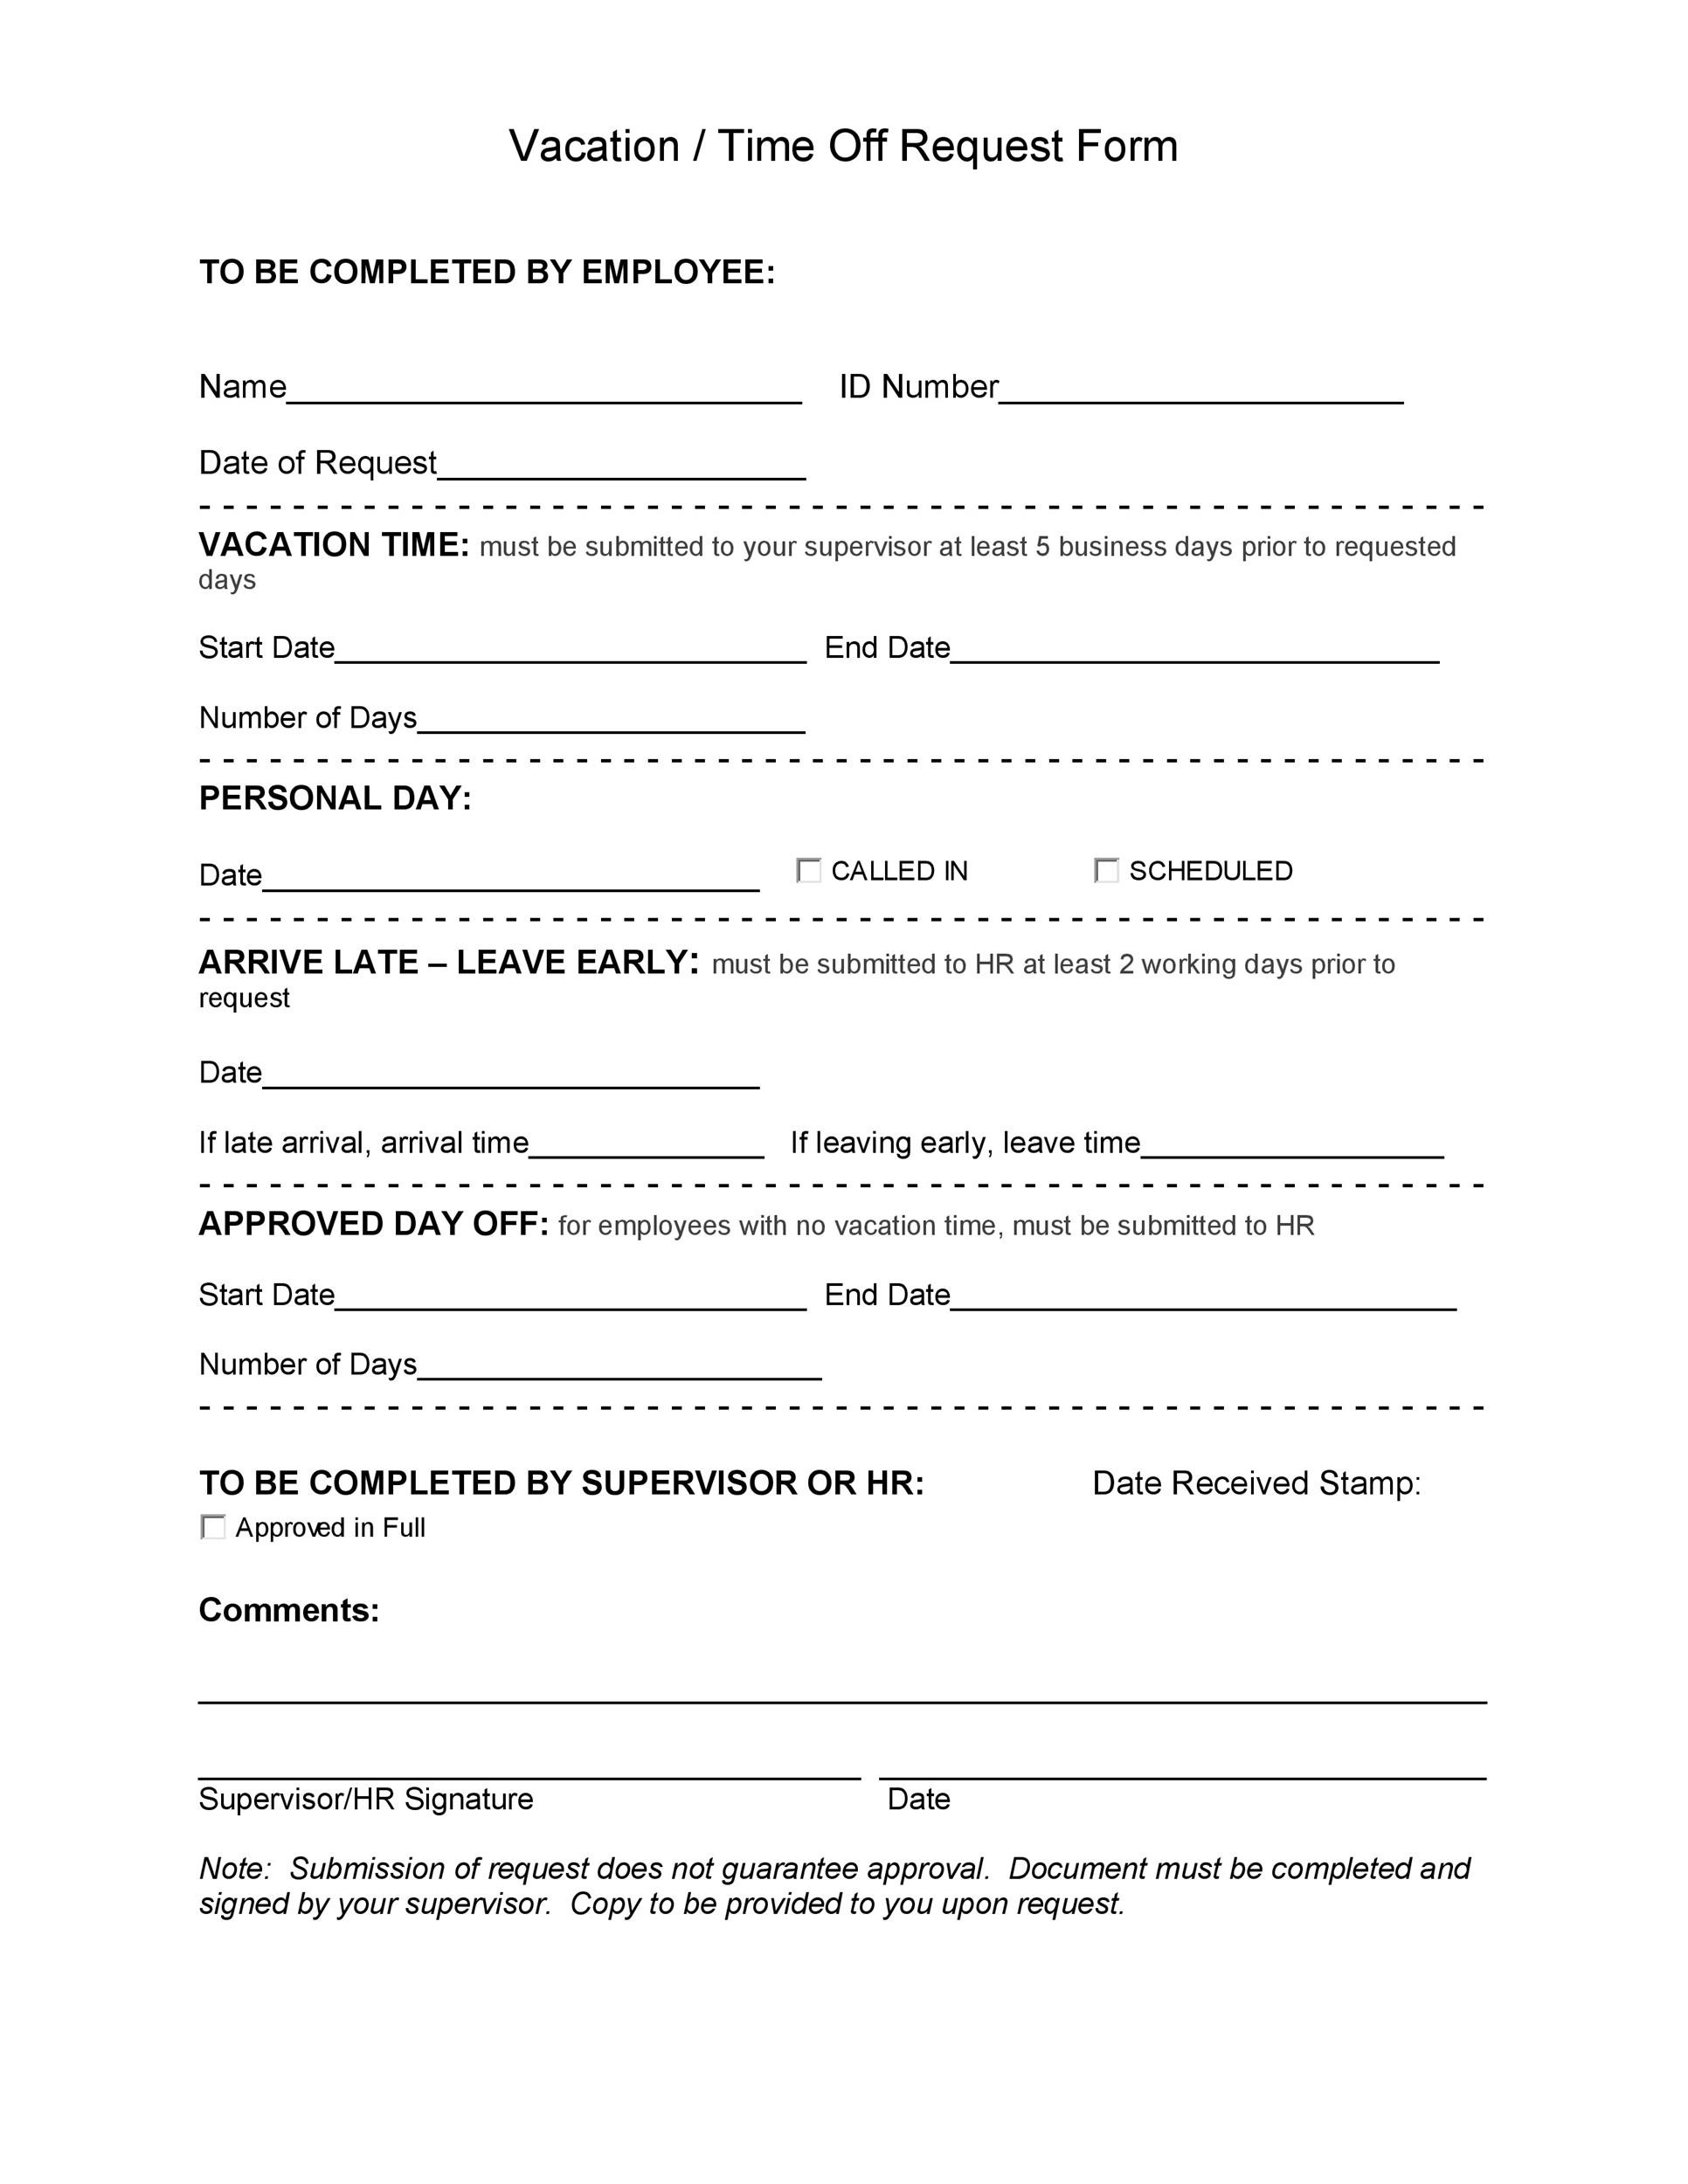 50 Professional Employee Vacation Request Forms [Word] ᐅ Template Lab